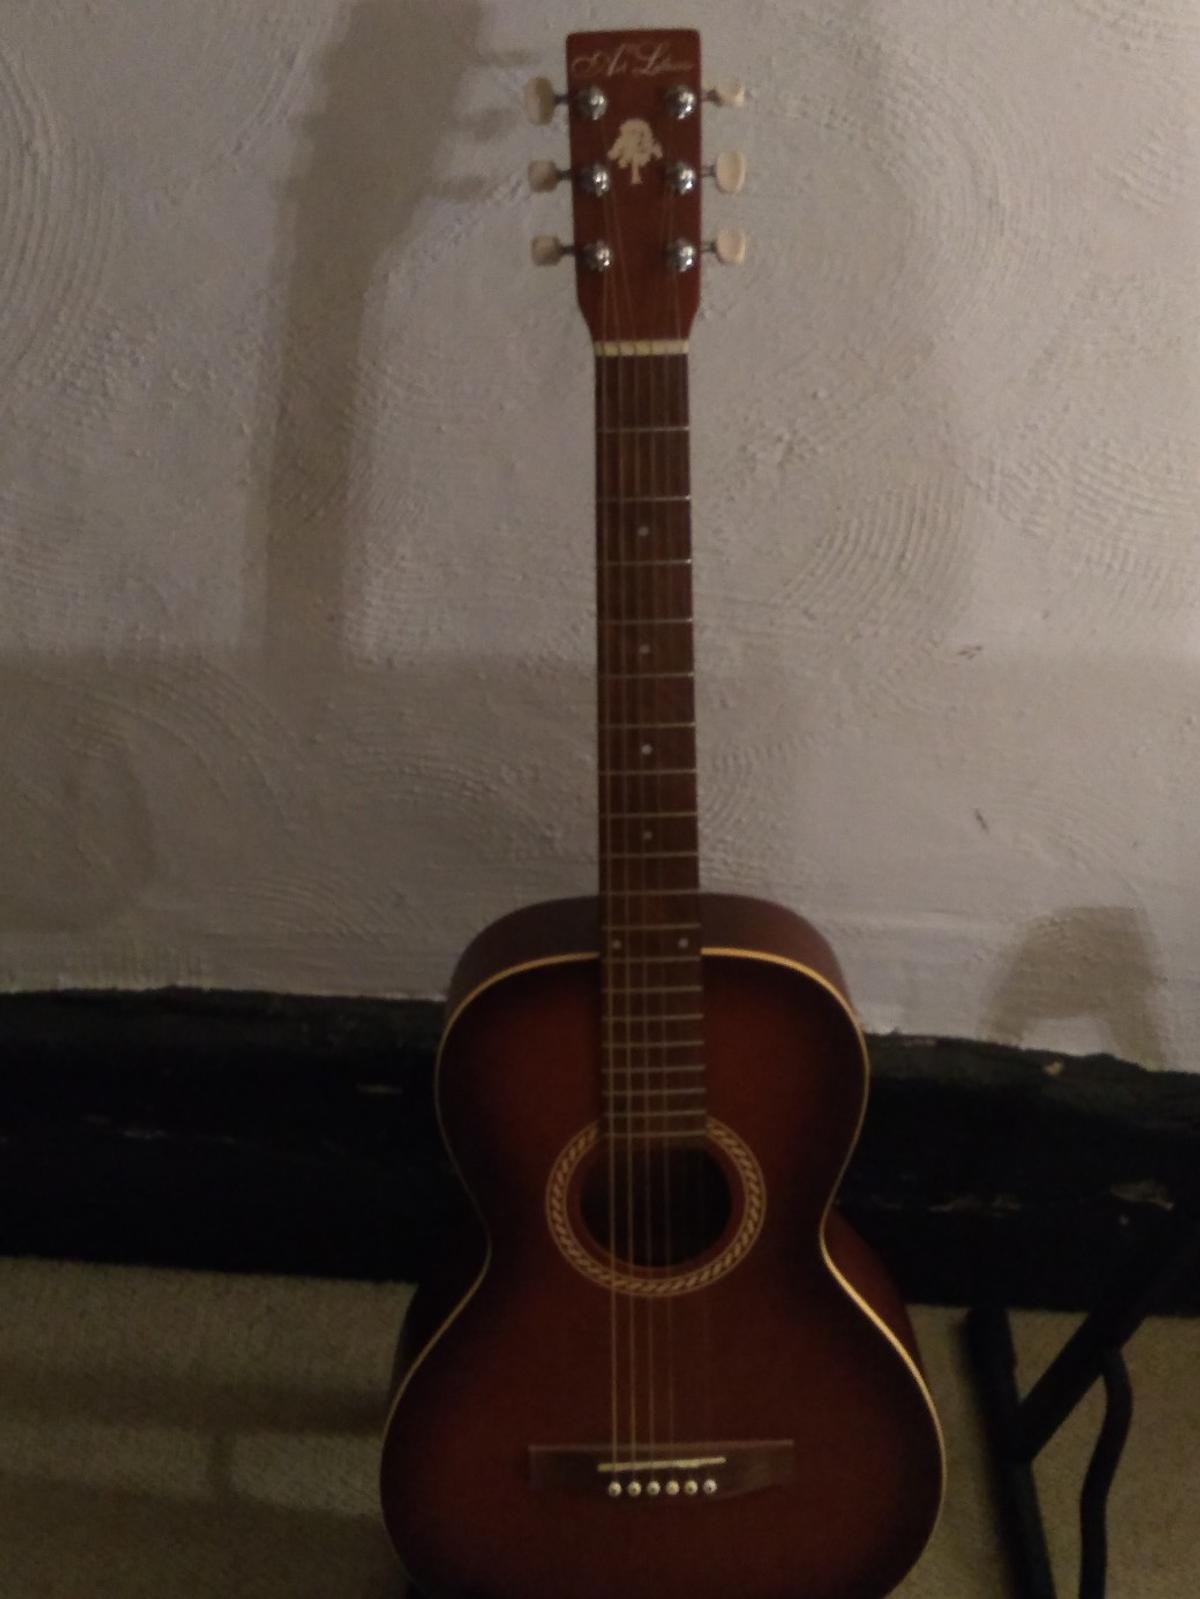 Art &Lutherie in CO16 Tendring for £75 00 for sale - Shpock